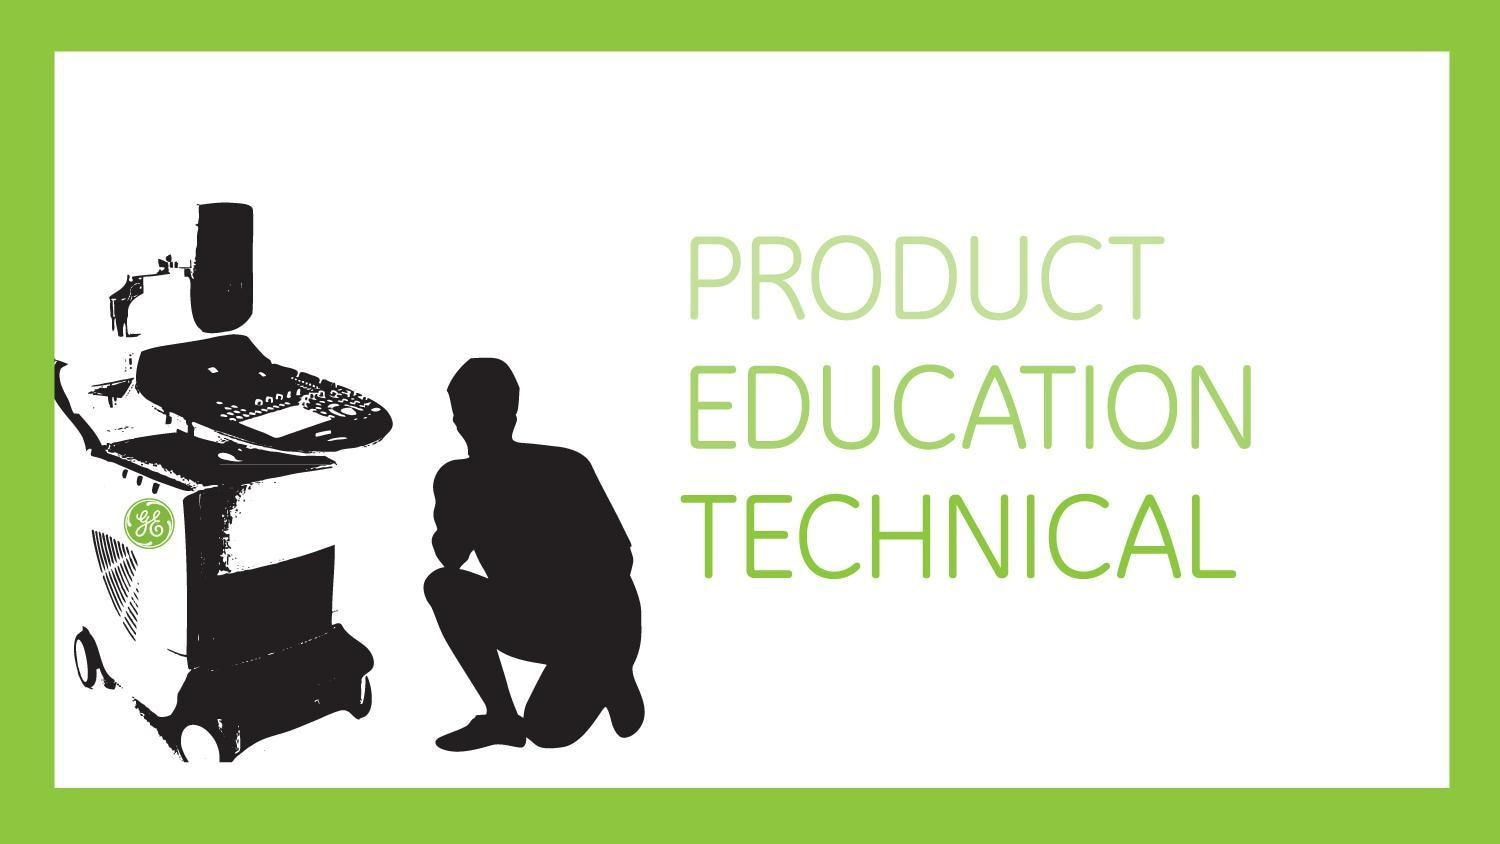 Product Education Technical.